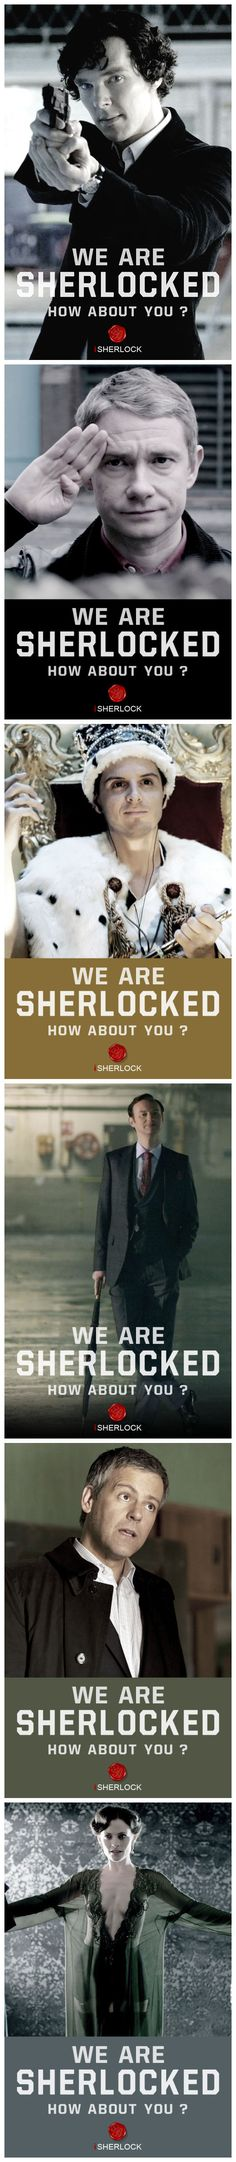 Sherlocked!!  via http://weibo.com/wearesherlocked